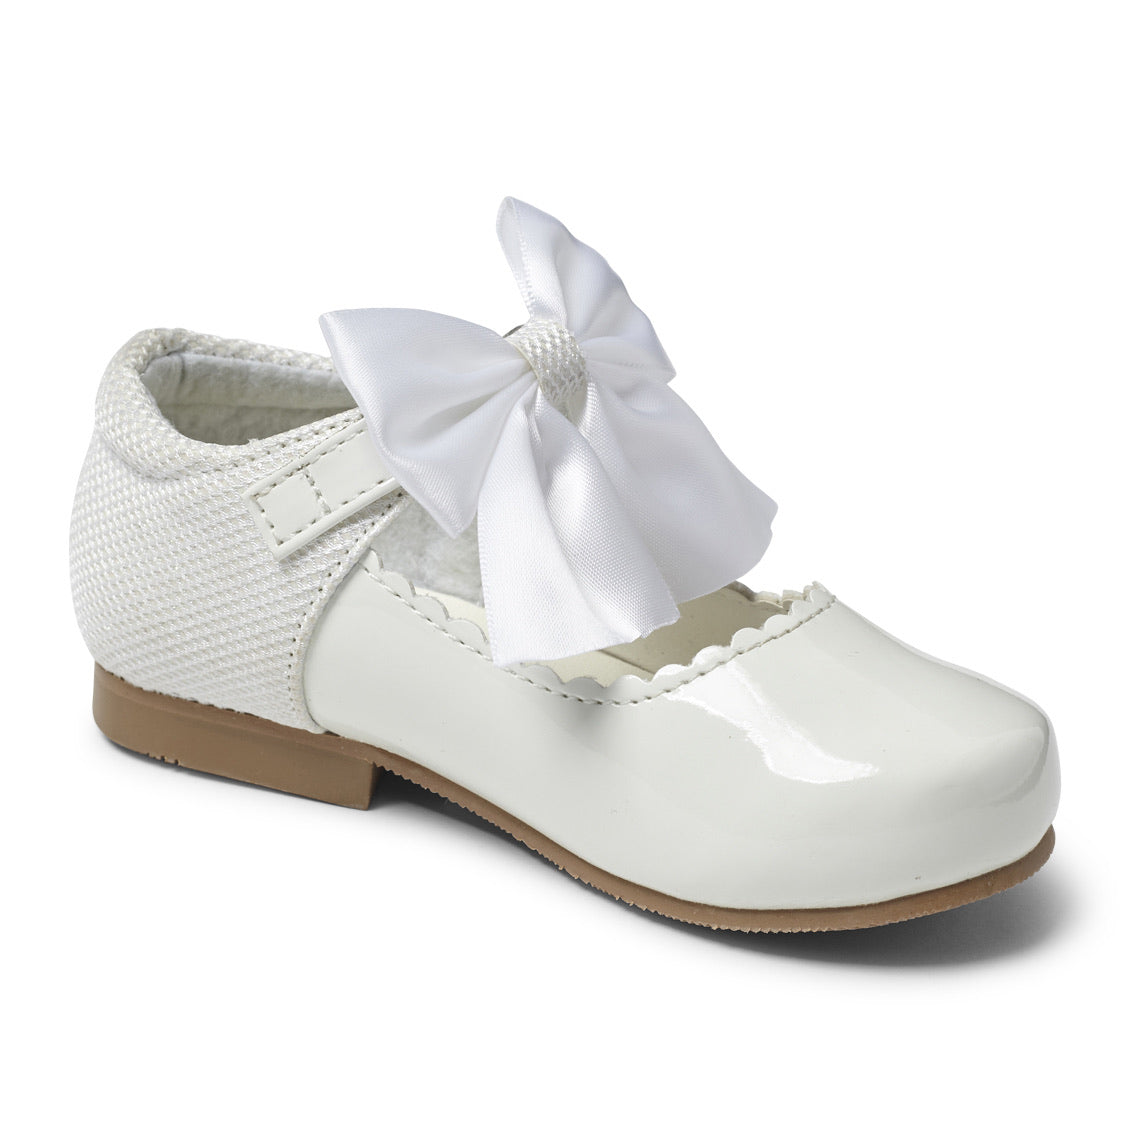 Kristy White Bow Hard Sole Shoes